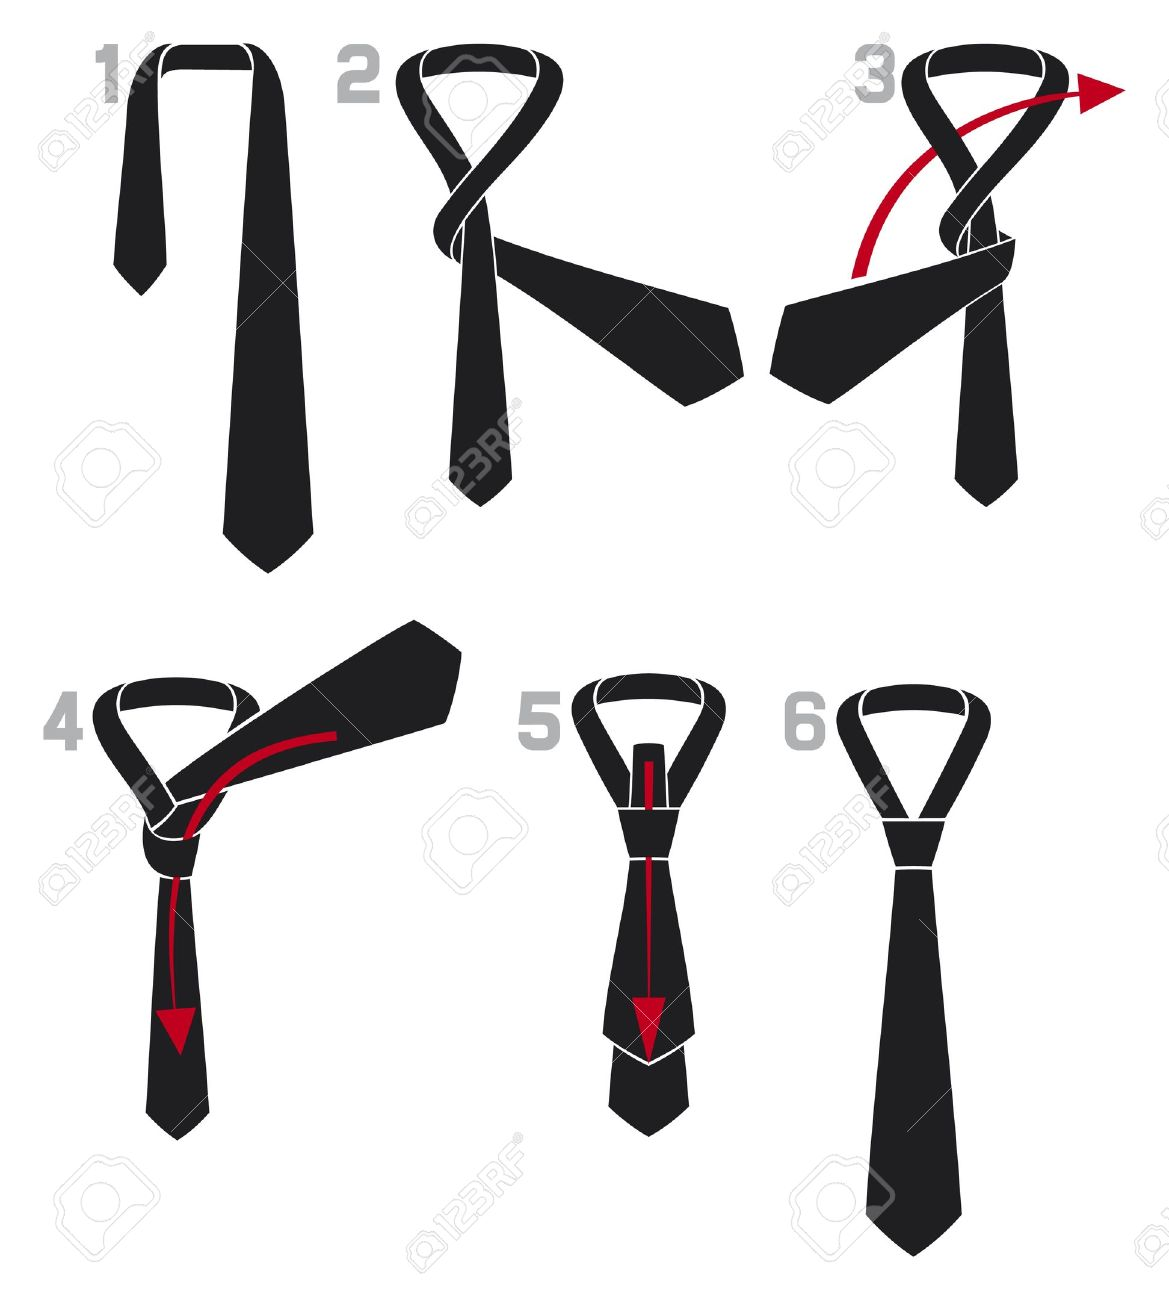 tie and knot instructions  the four in hand knot, Instructions how to tie a simple four in hand tie knot, four-in-hand knot, tie knot Stock Vector - 18076566